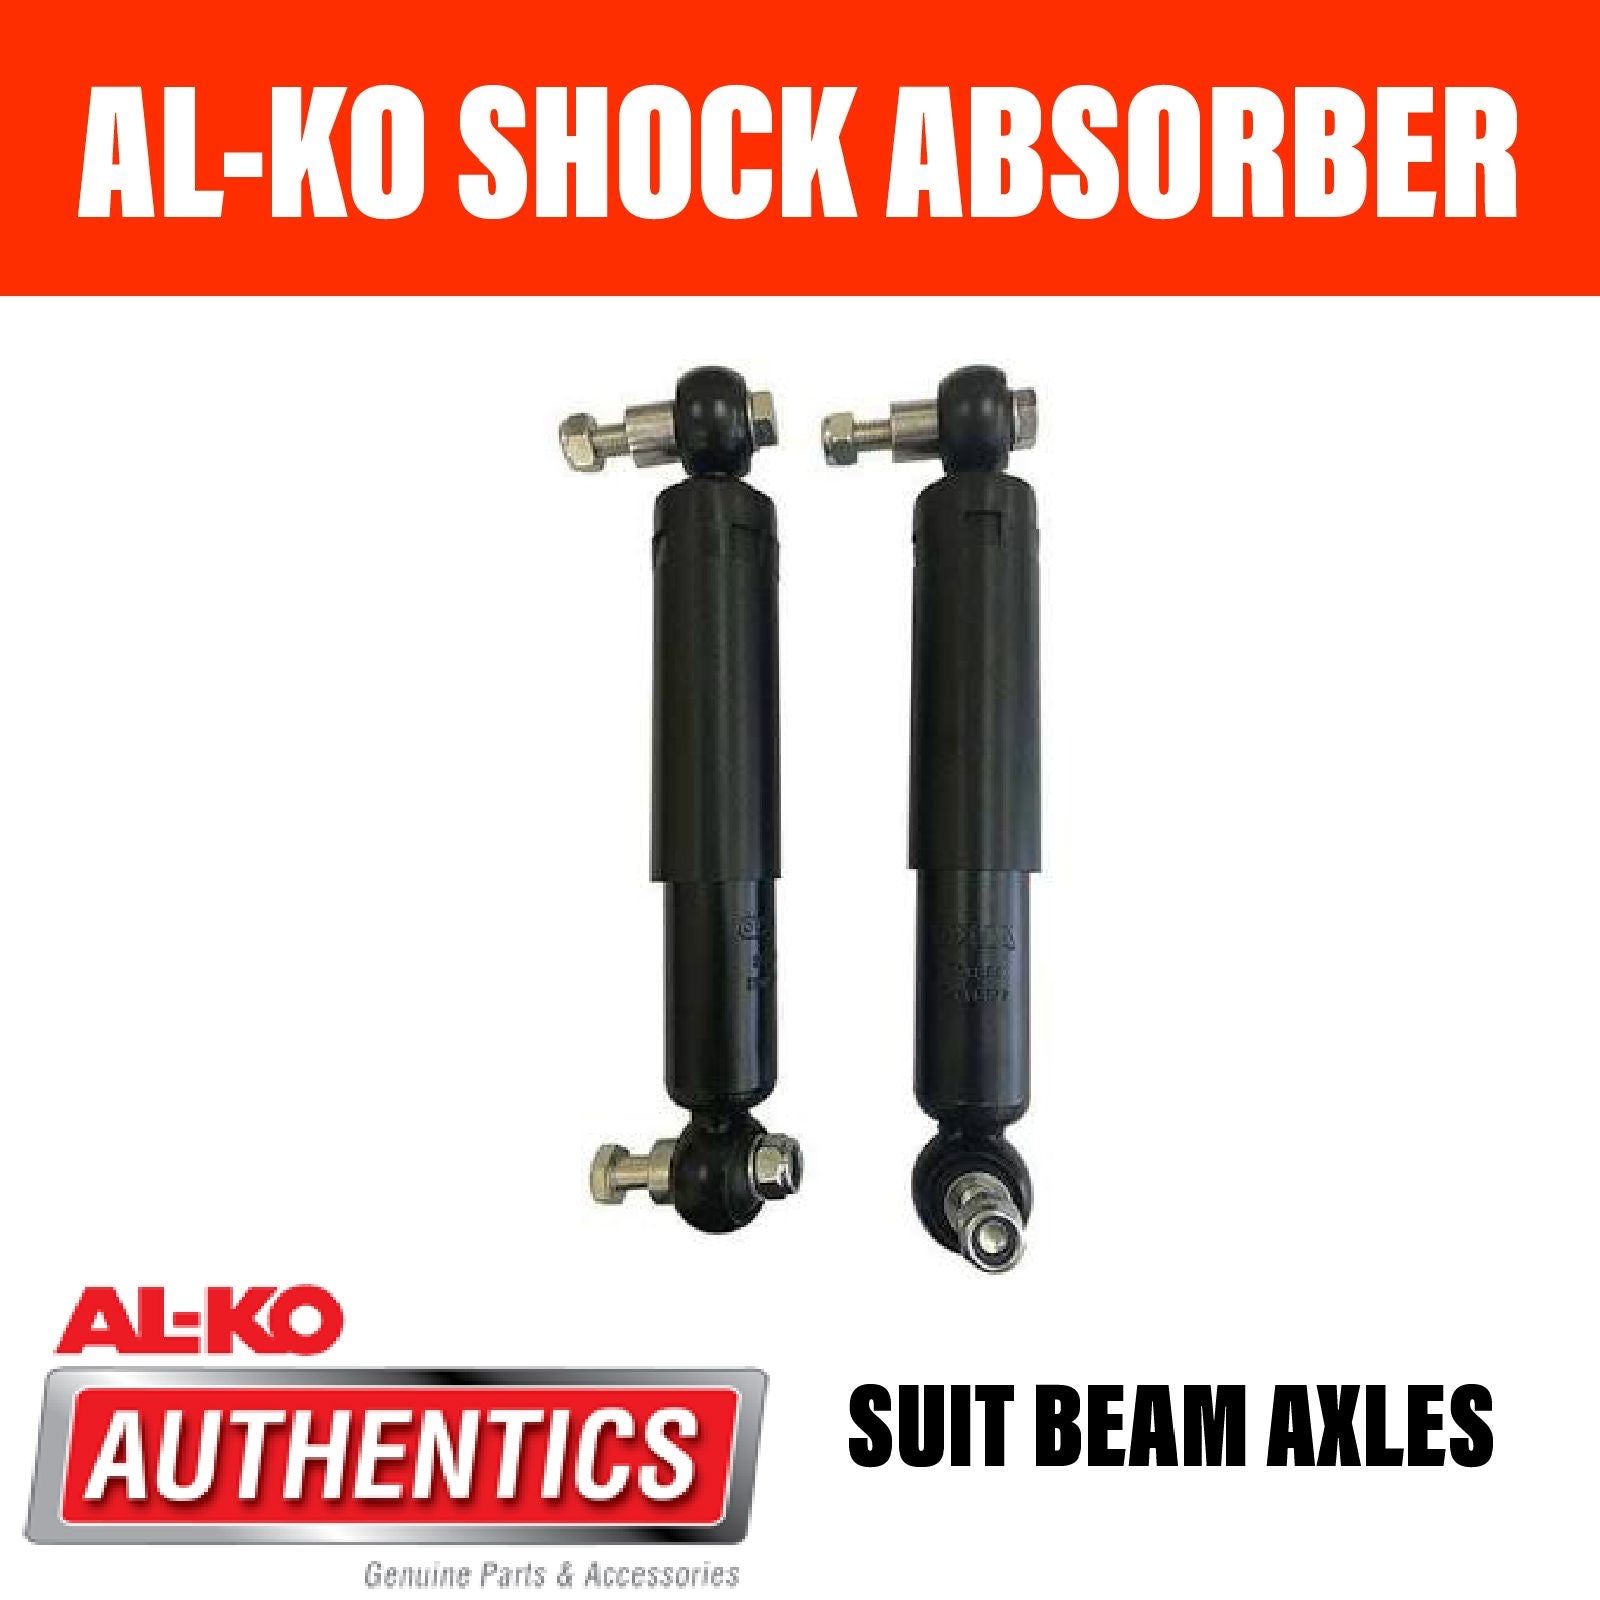 AL-KO SHOCK ABSORBER KIT FOR BEAM AXLES